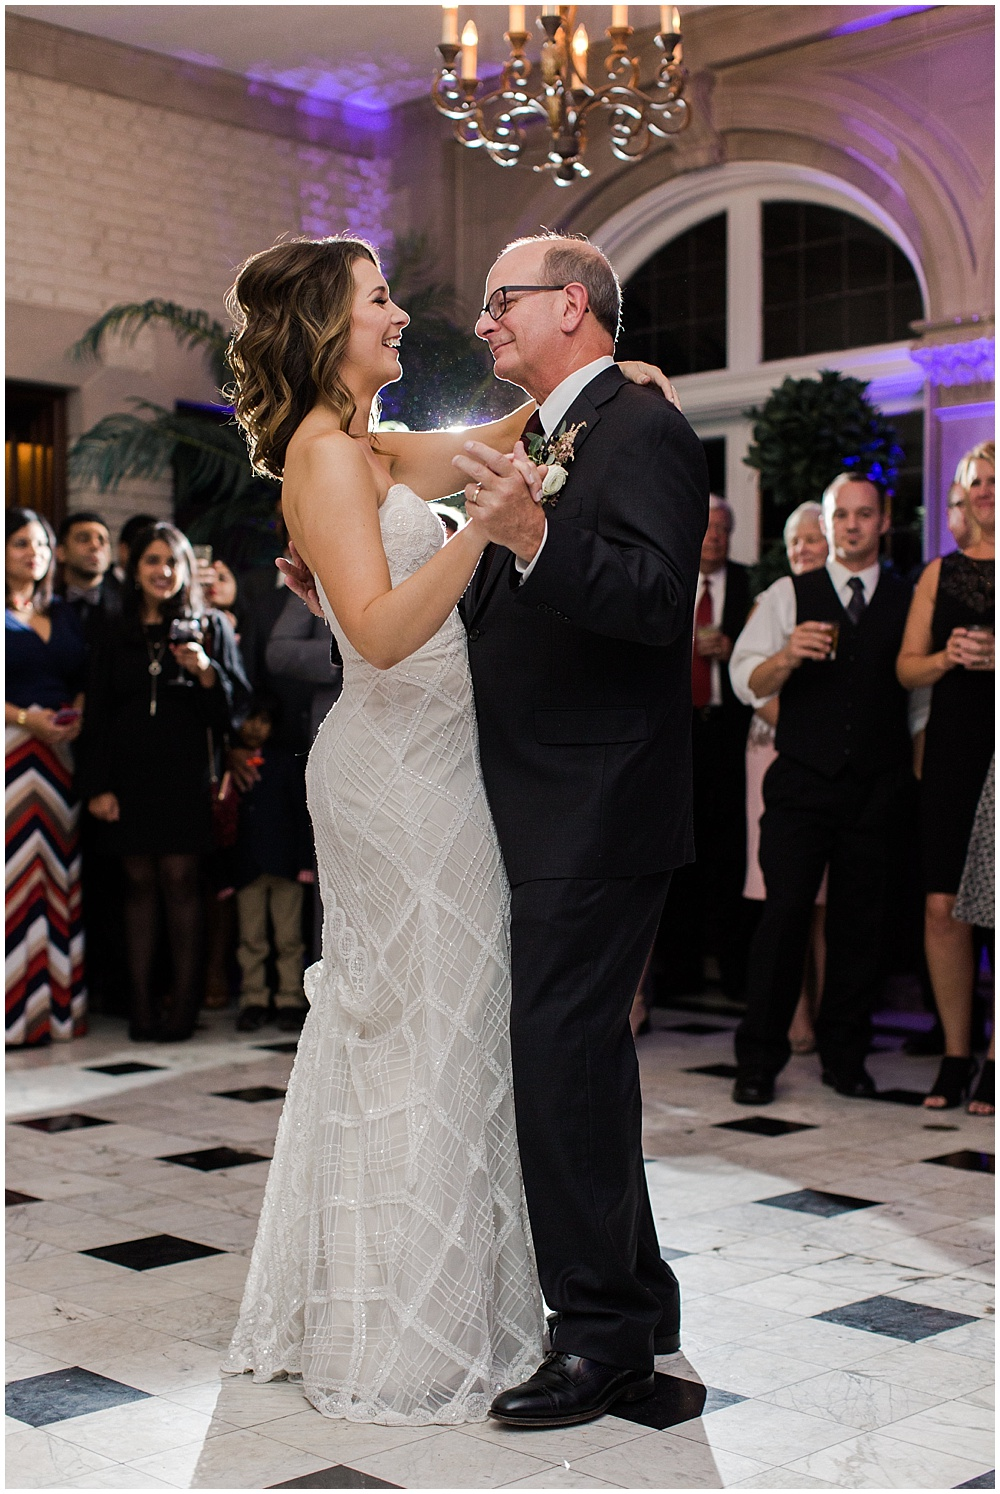 Father daughter dance | Navy and Gold Wedding at Laurel Hall with Ivan & Louise Photography + Jessica Dum Wedding Coordination